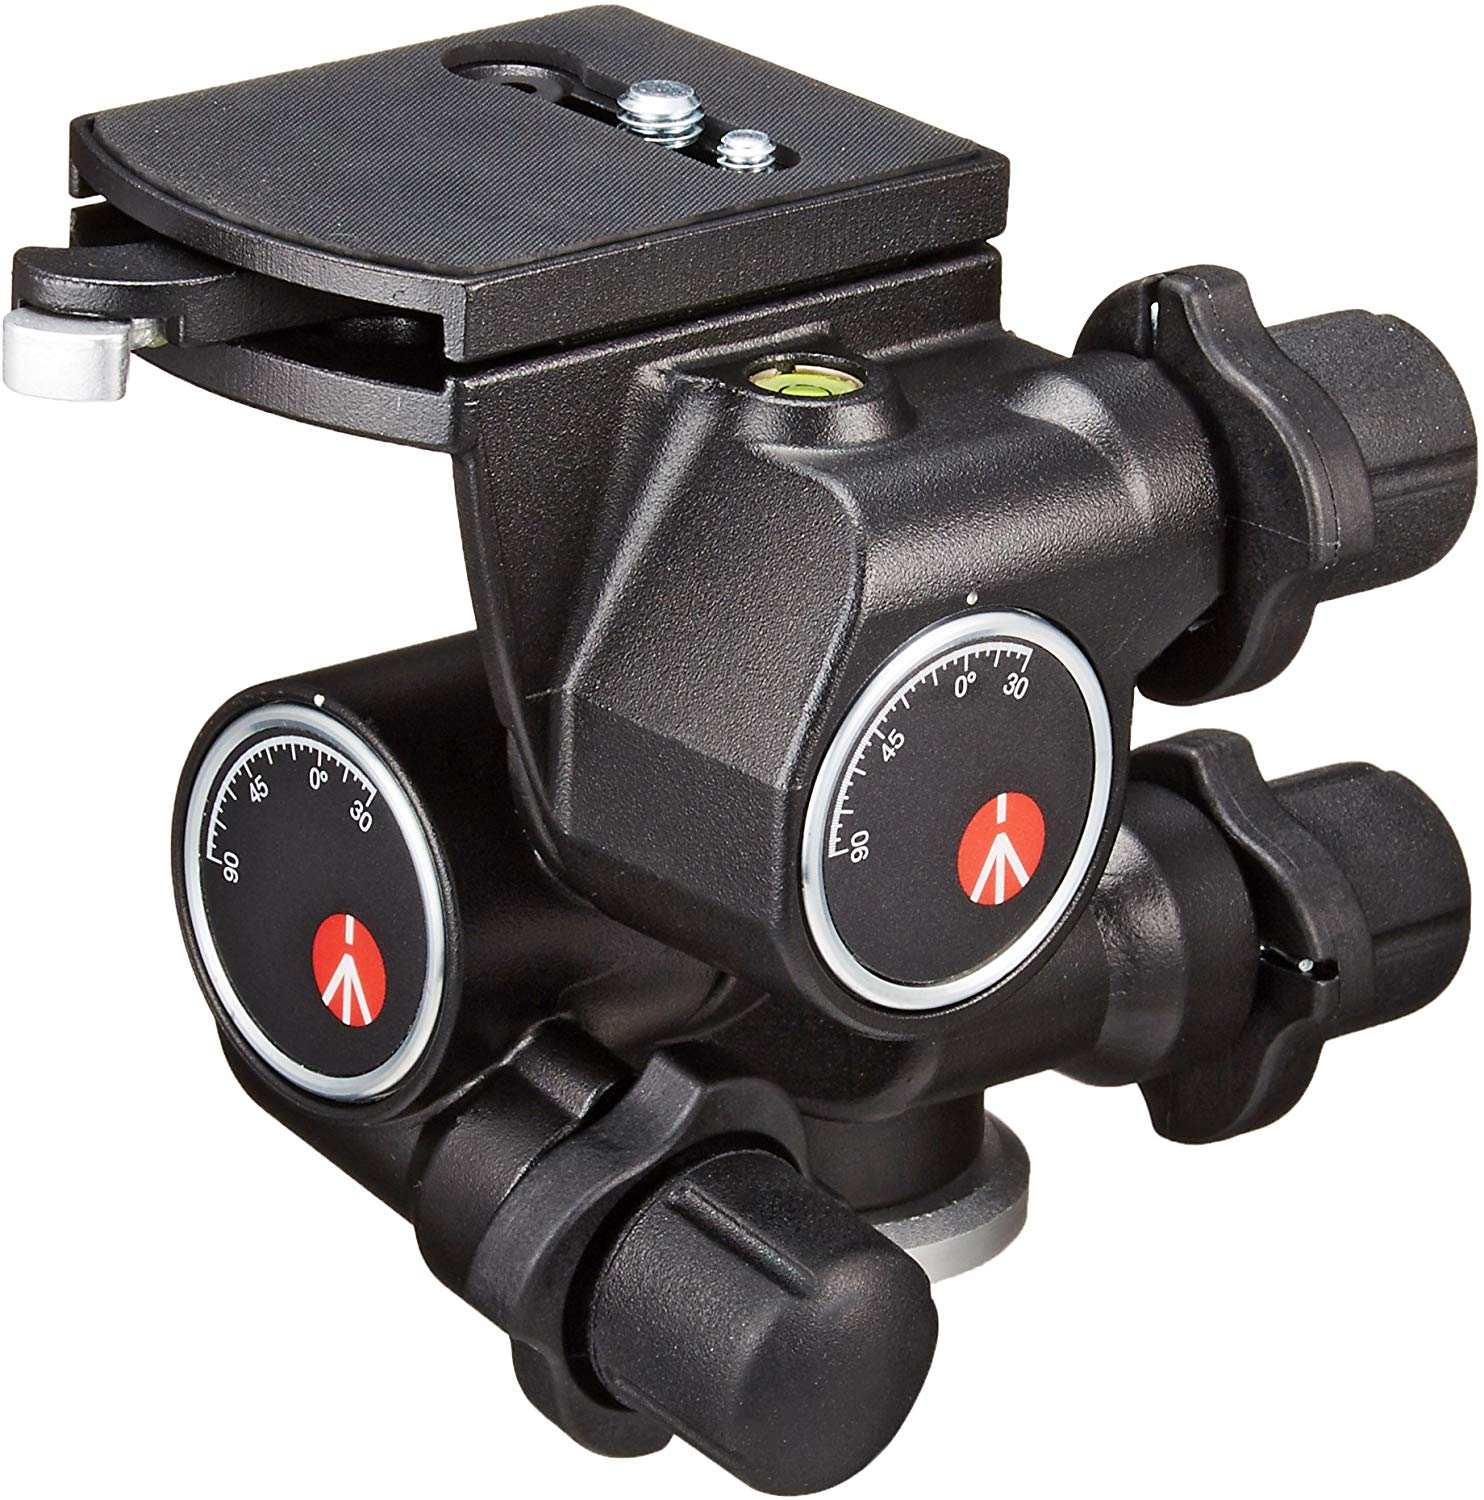 Manfrotto 410 Tripod Head